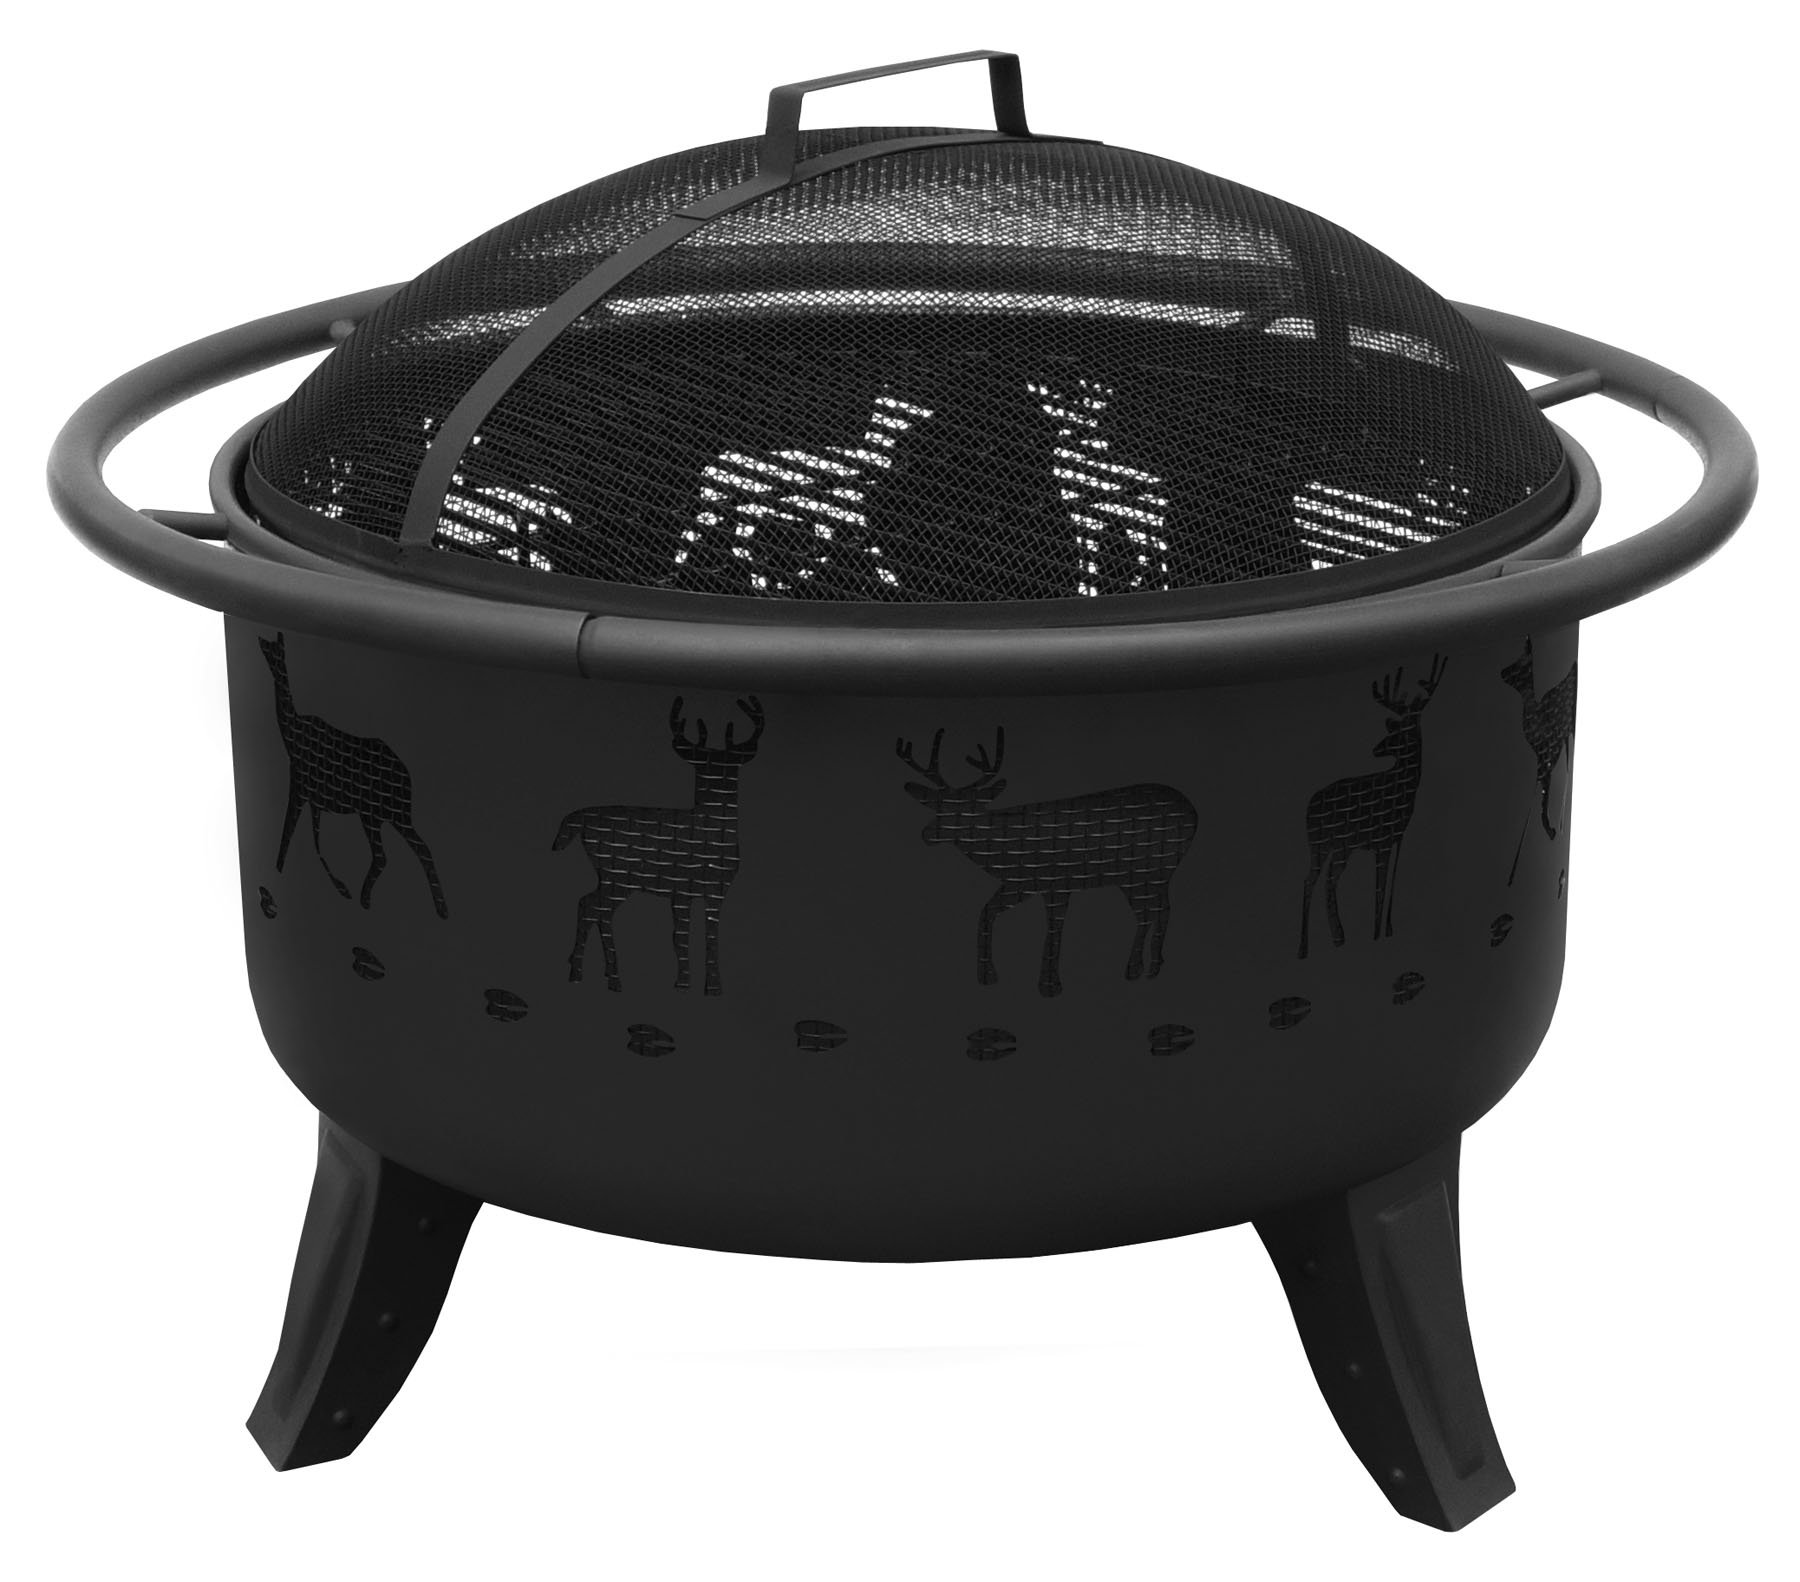 Landmann USA 23192 Patio Lights Deer Tracks Fire Pit, Black by Landmann